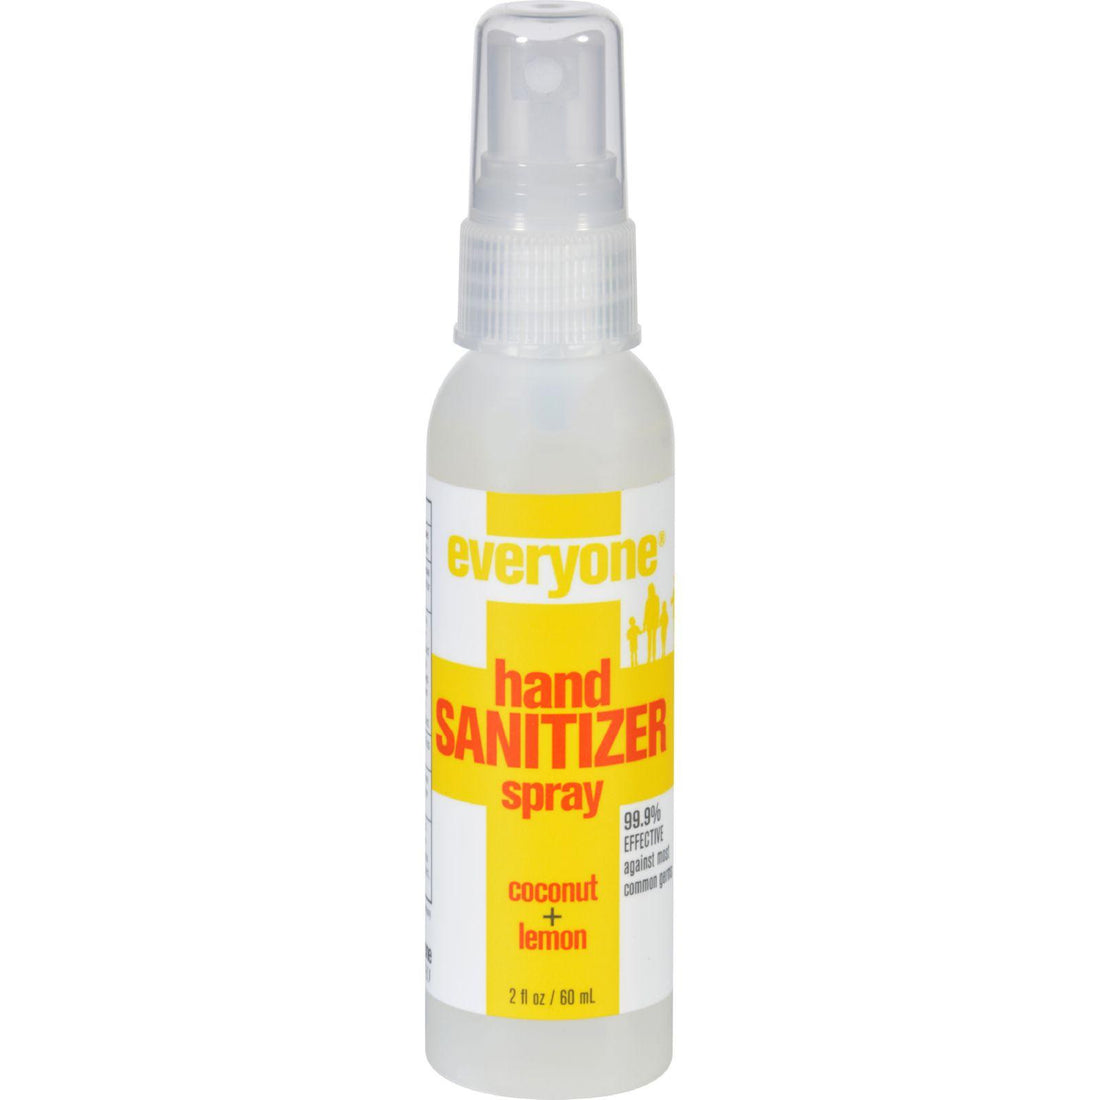 Mother Mantis: Eo Products Hand Sanitizer Spray - Everyone - Cocnut - Dsp - 2 Oz - 1 Case Eo Products